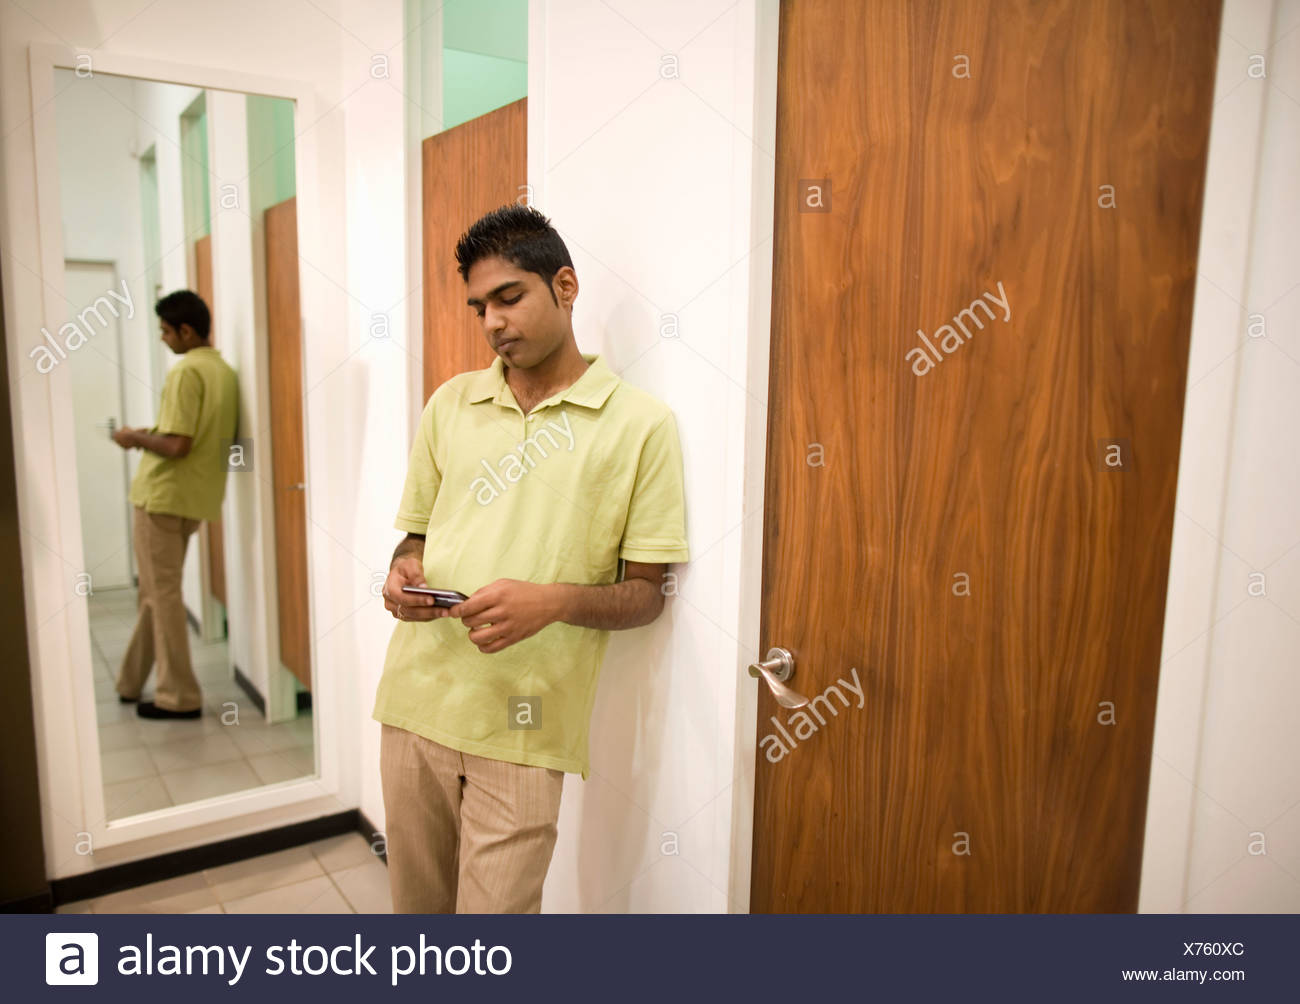 man waiting for woman